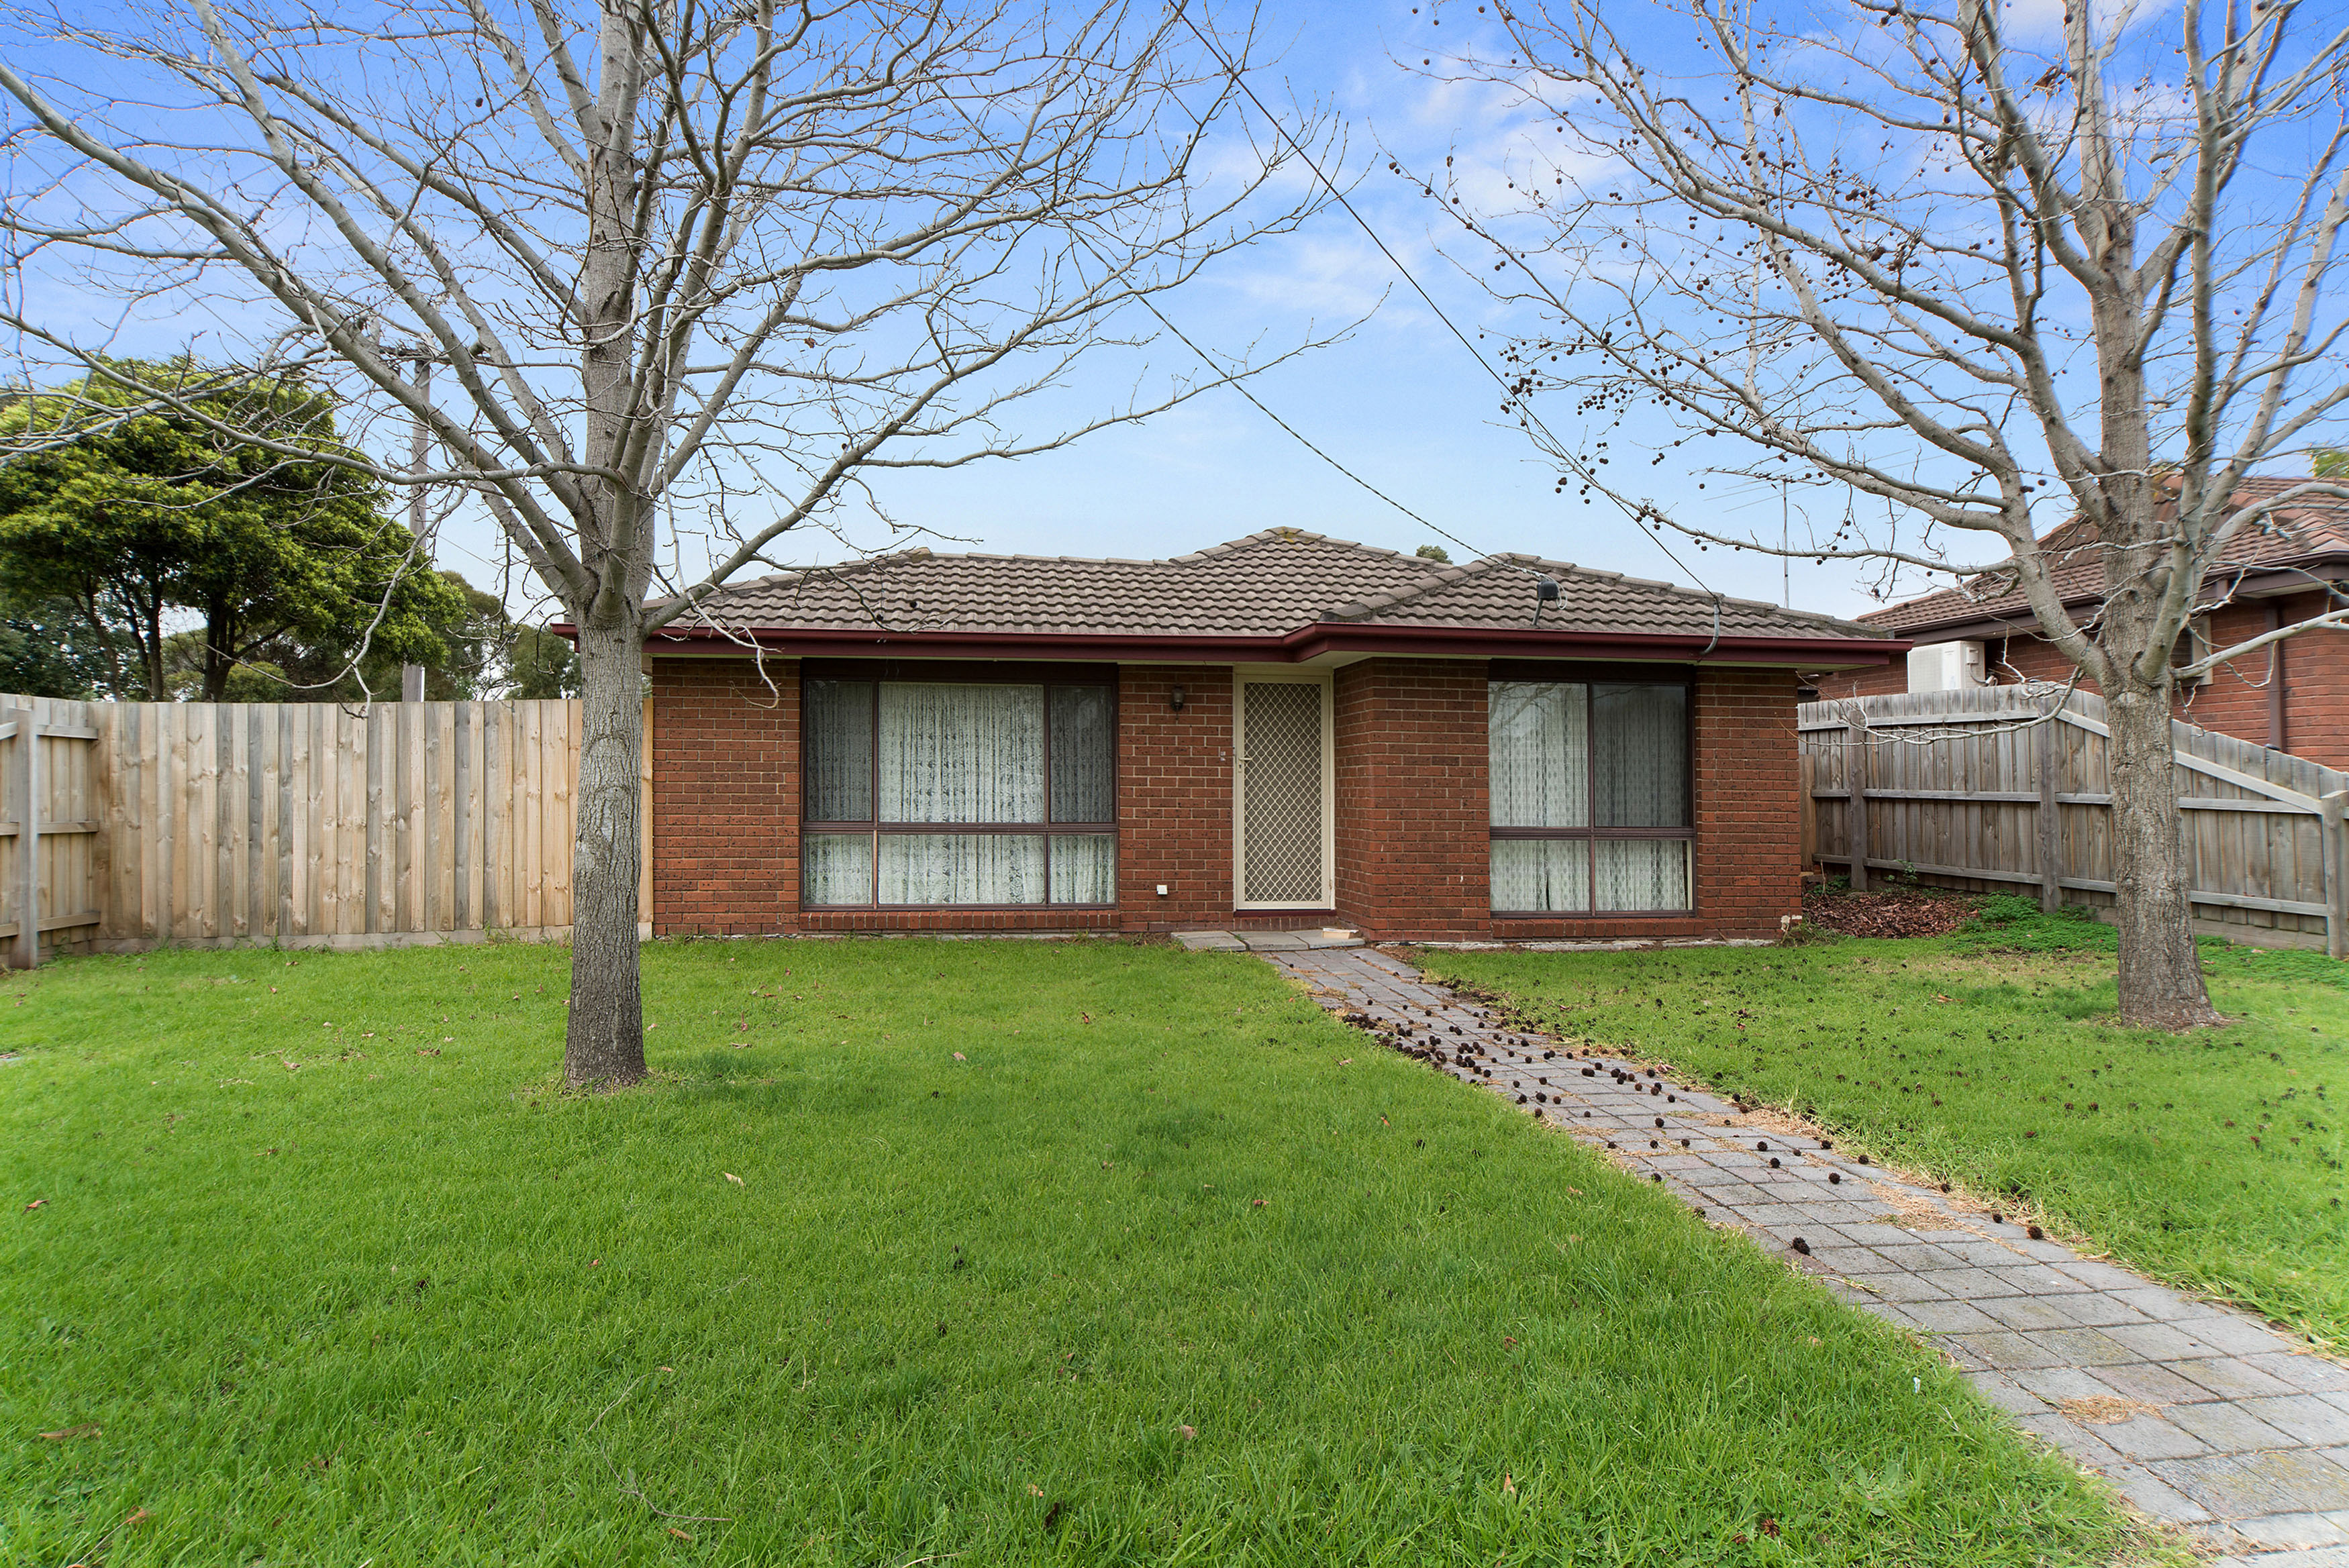 14 Phillip Street, FRANKSTON, VIC, 3199 - Image